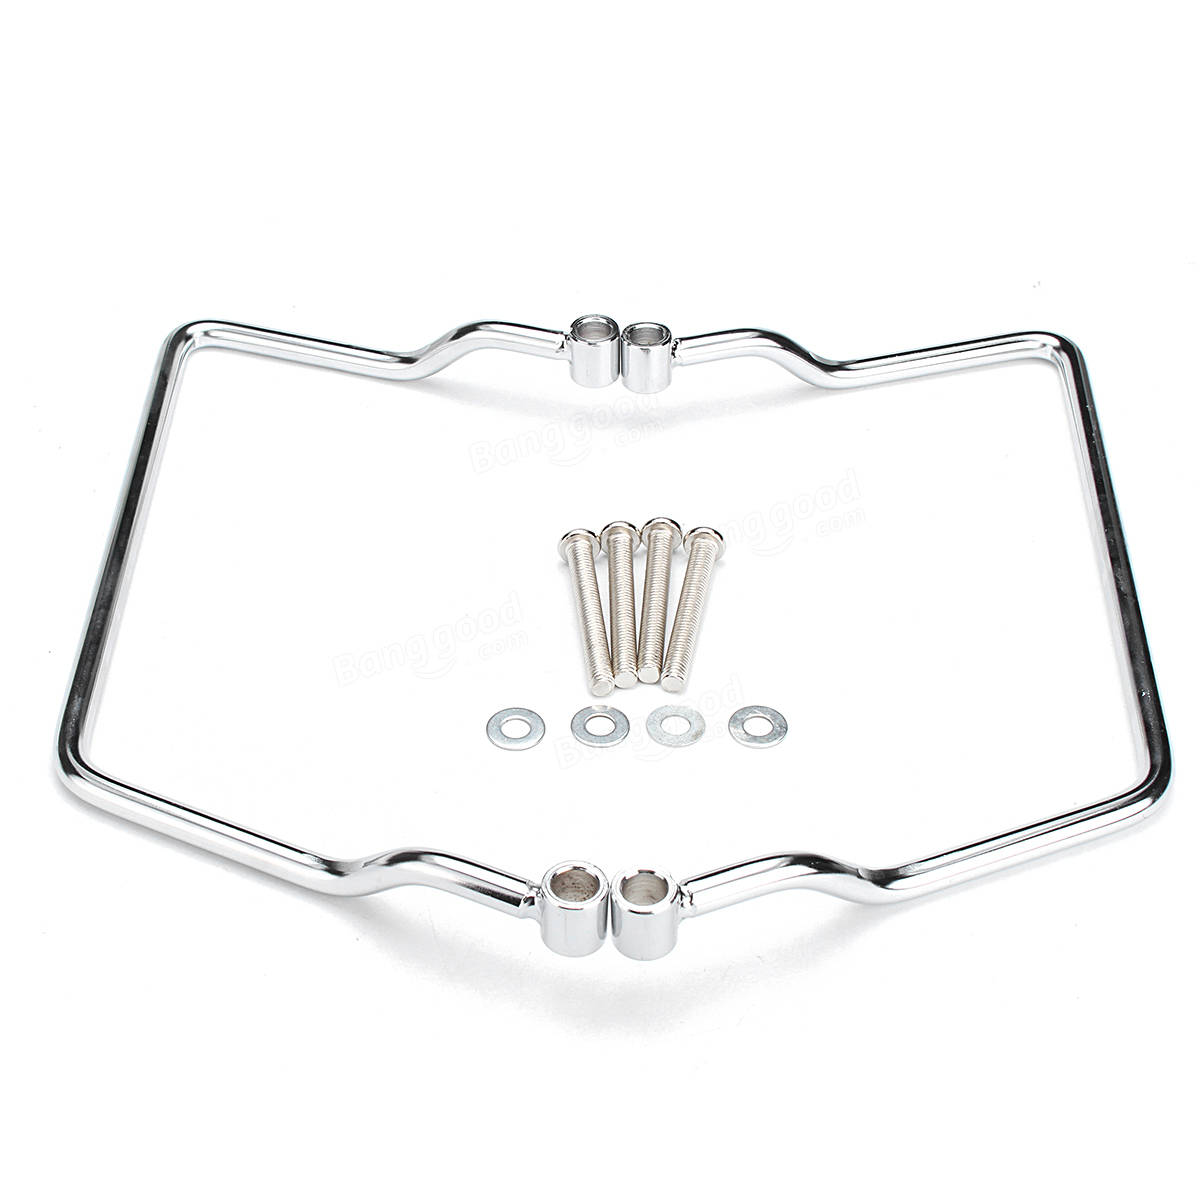 Saddle Bag Chrome Mount Bracket For Yamaha V Star Dragstar